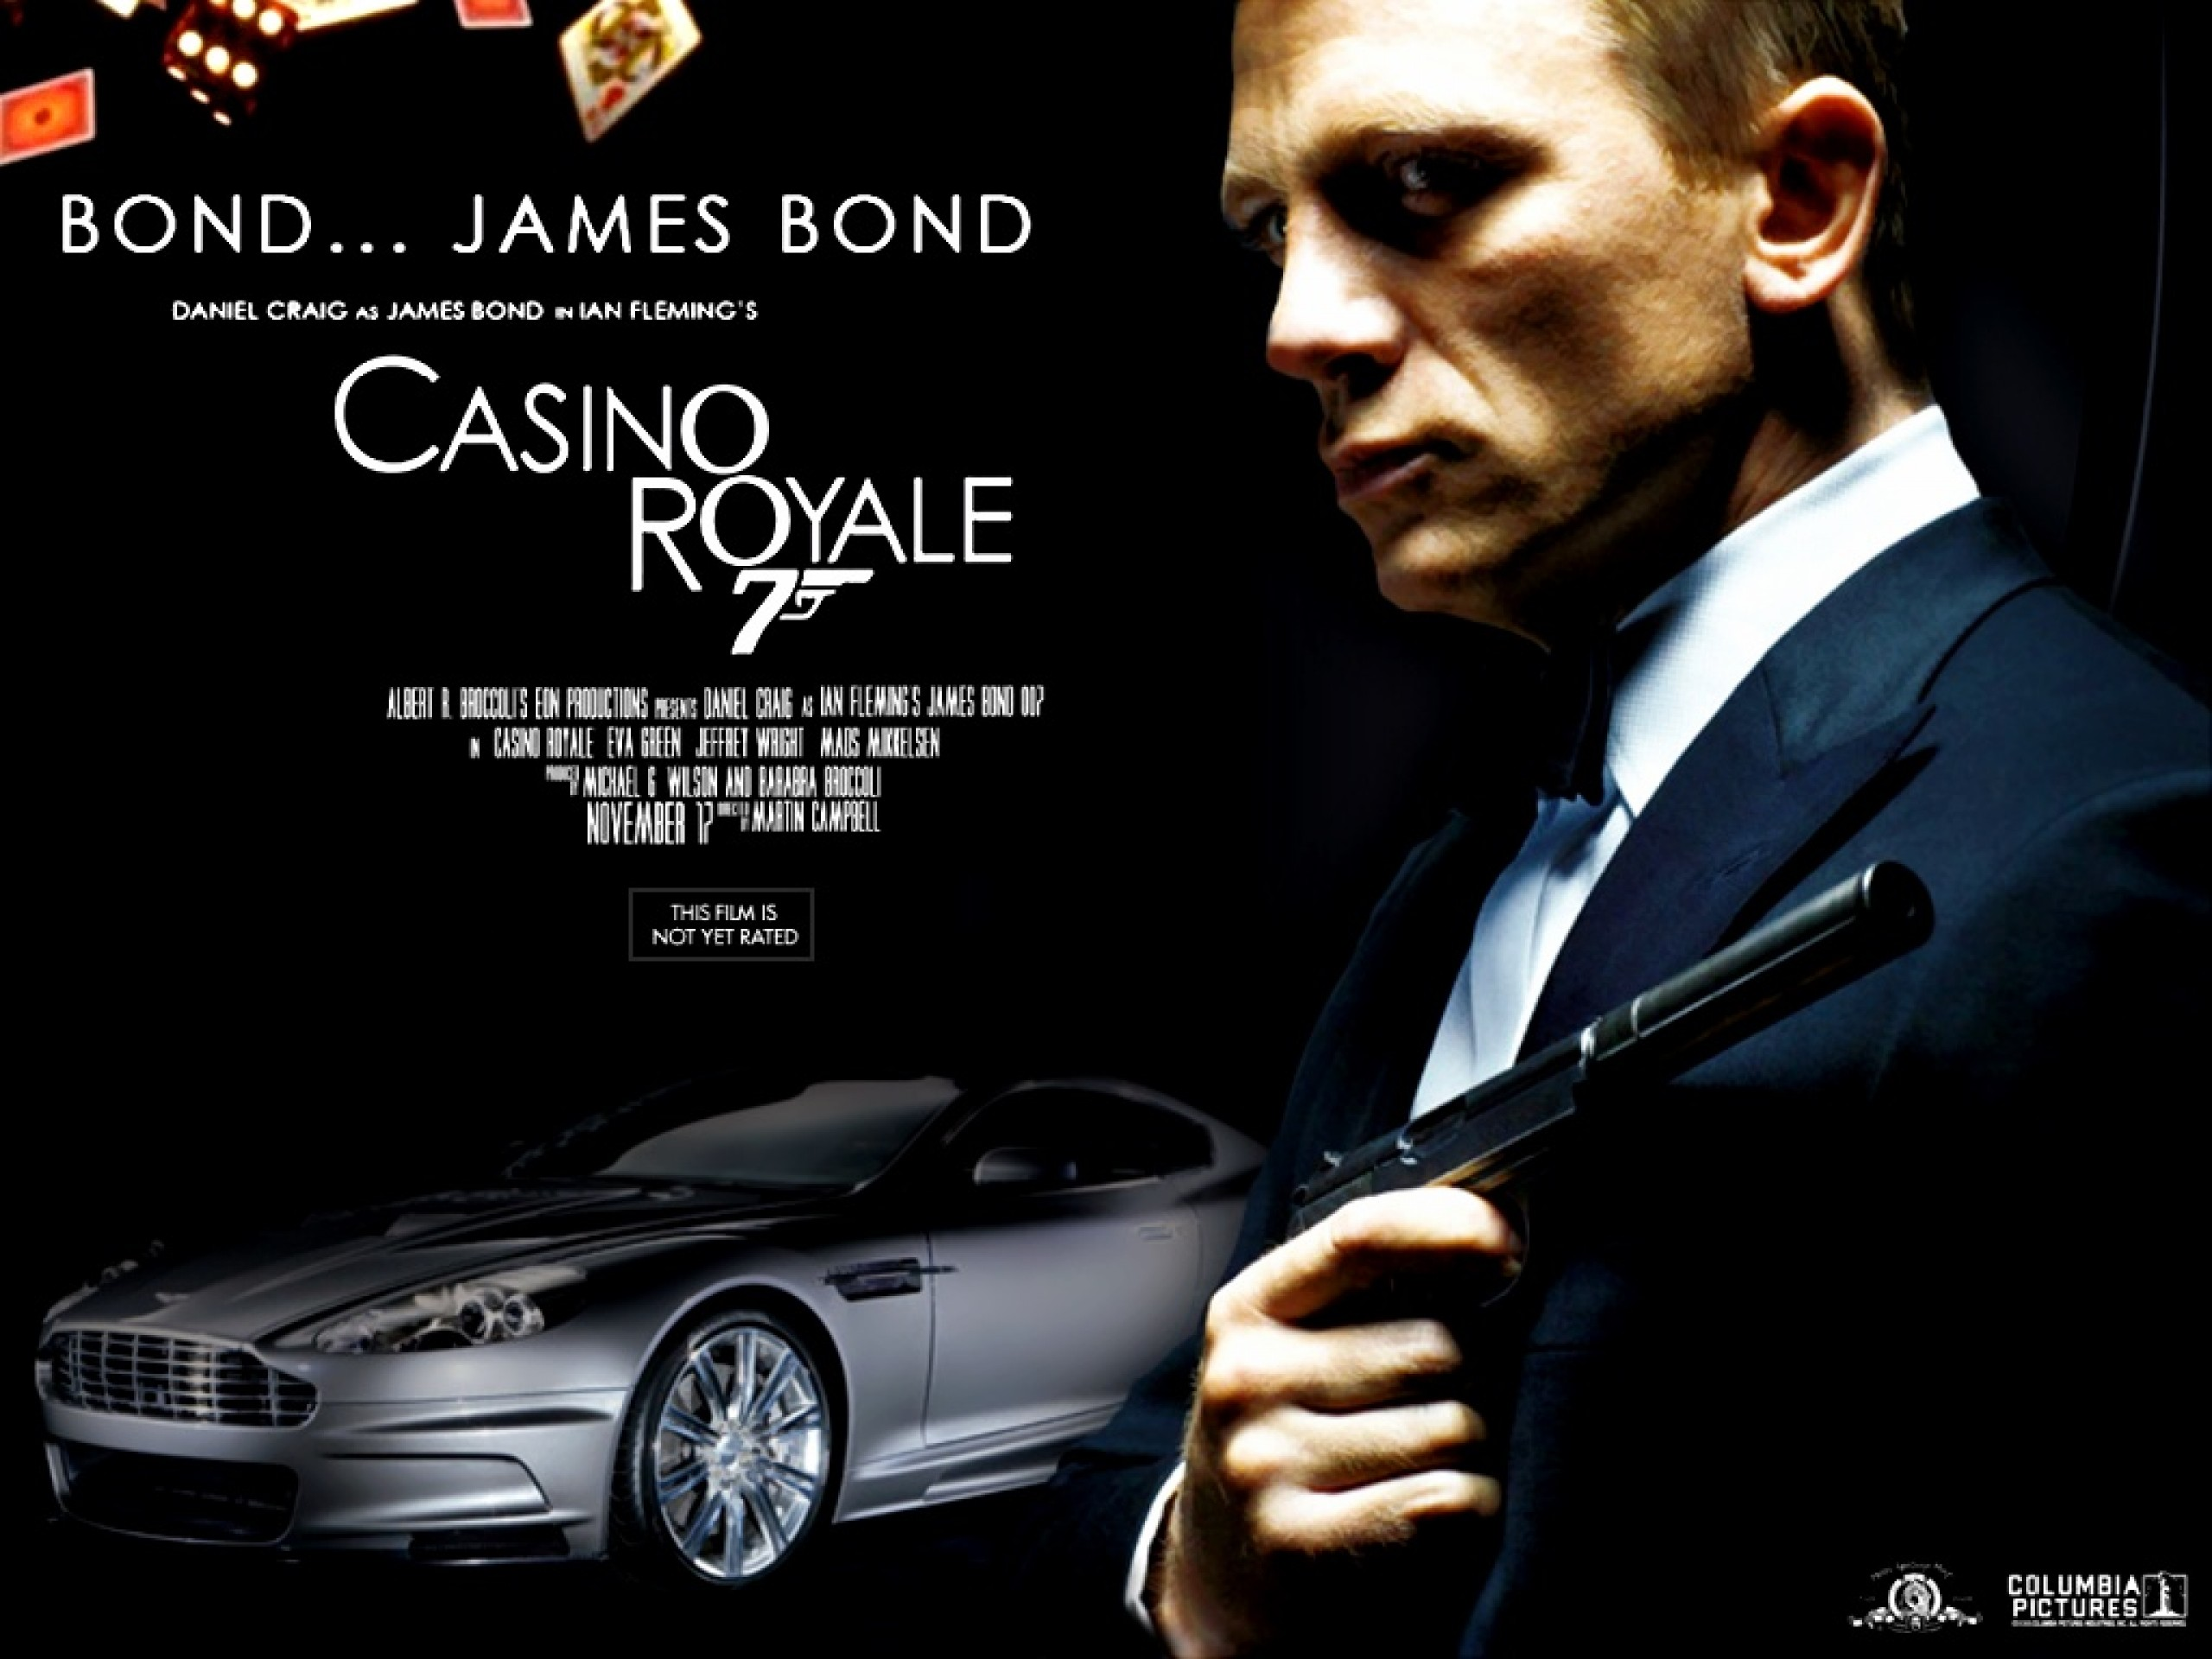 casino bond royal